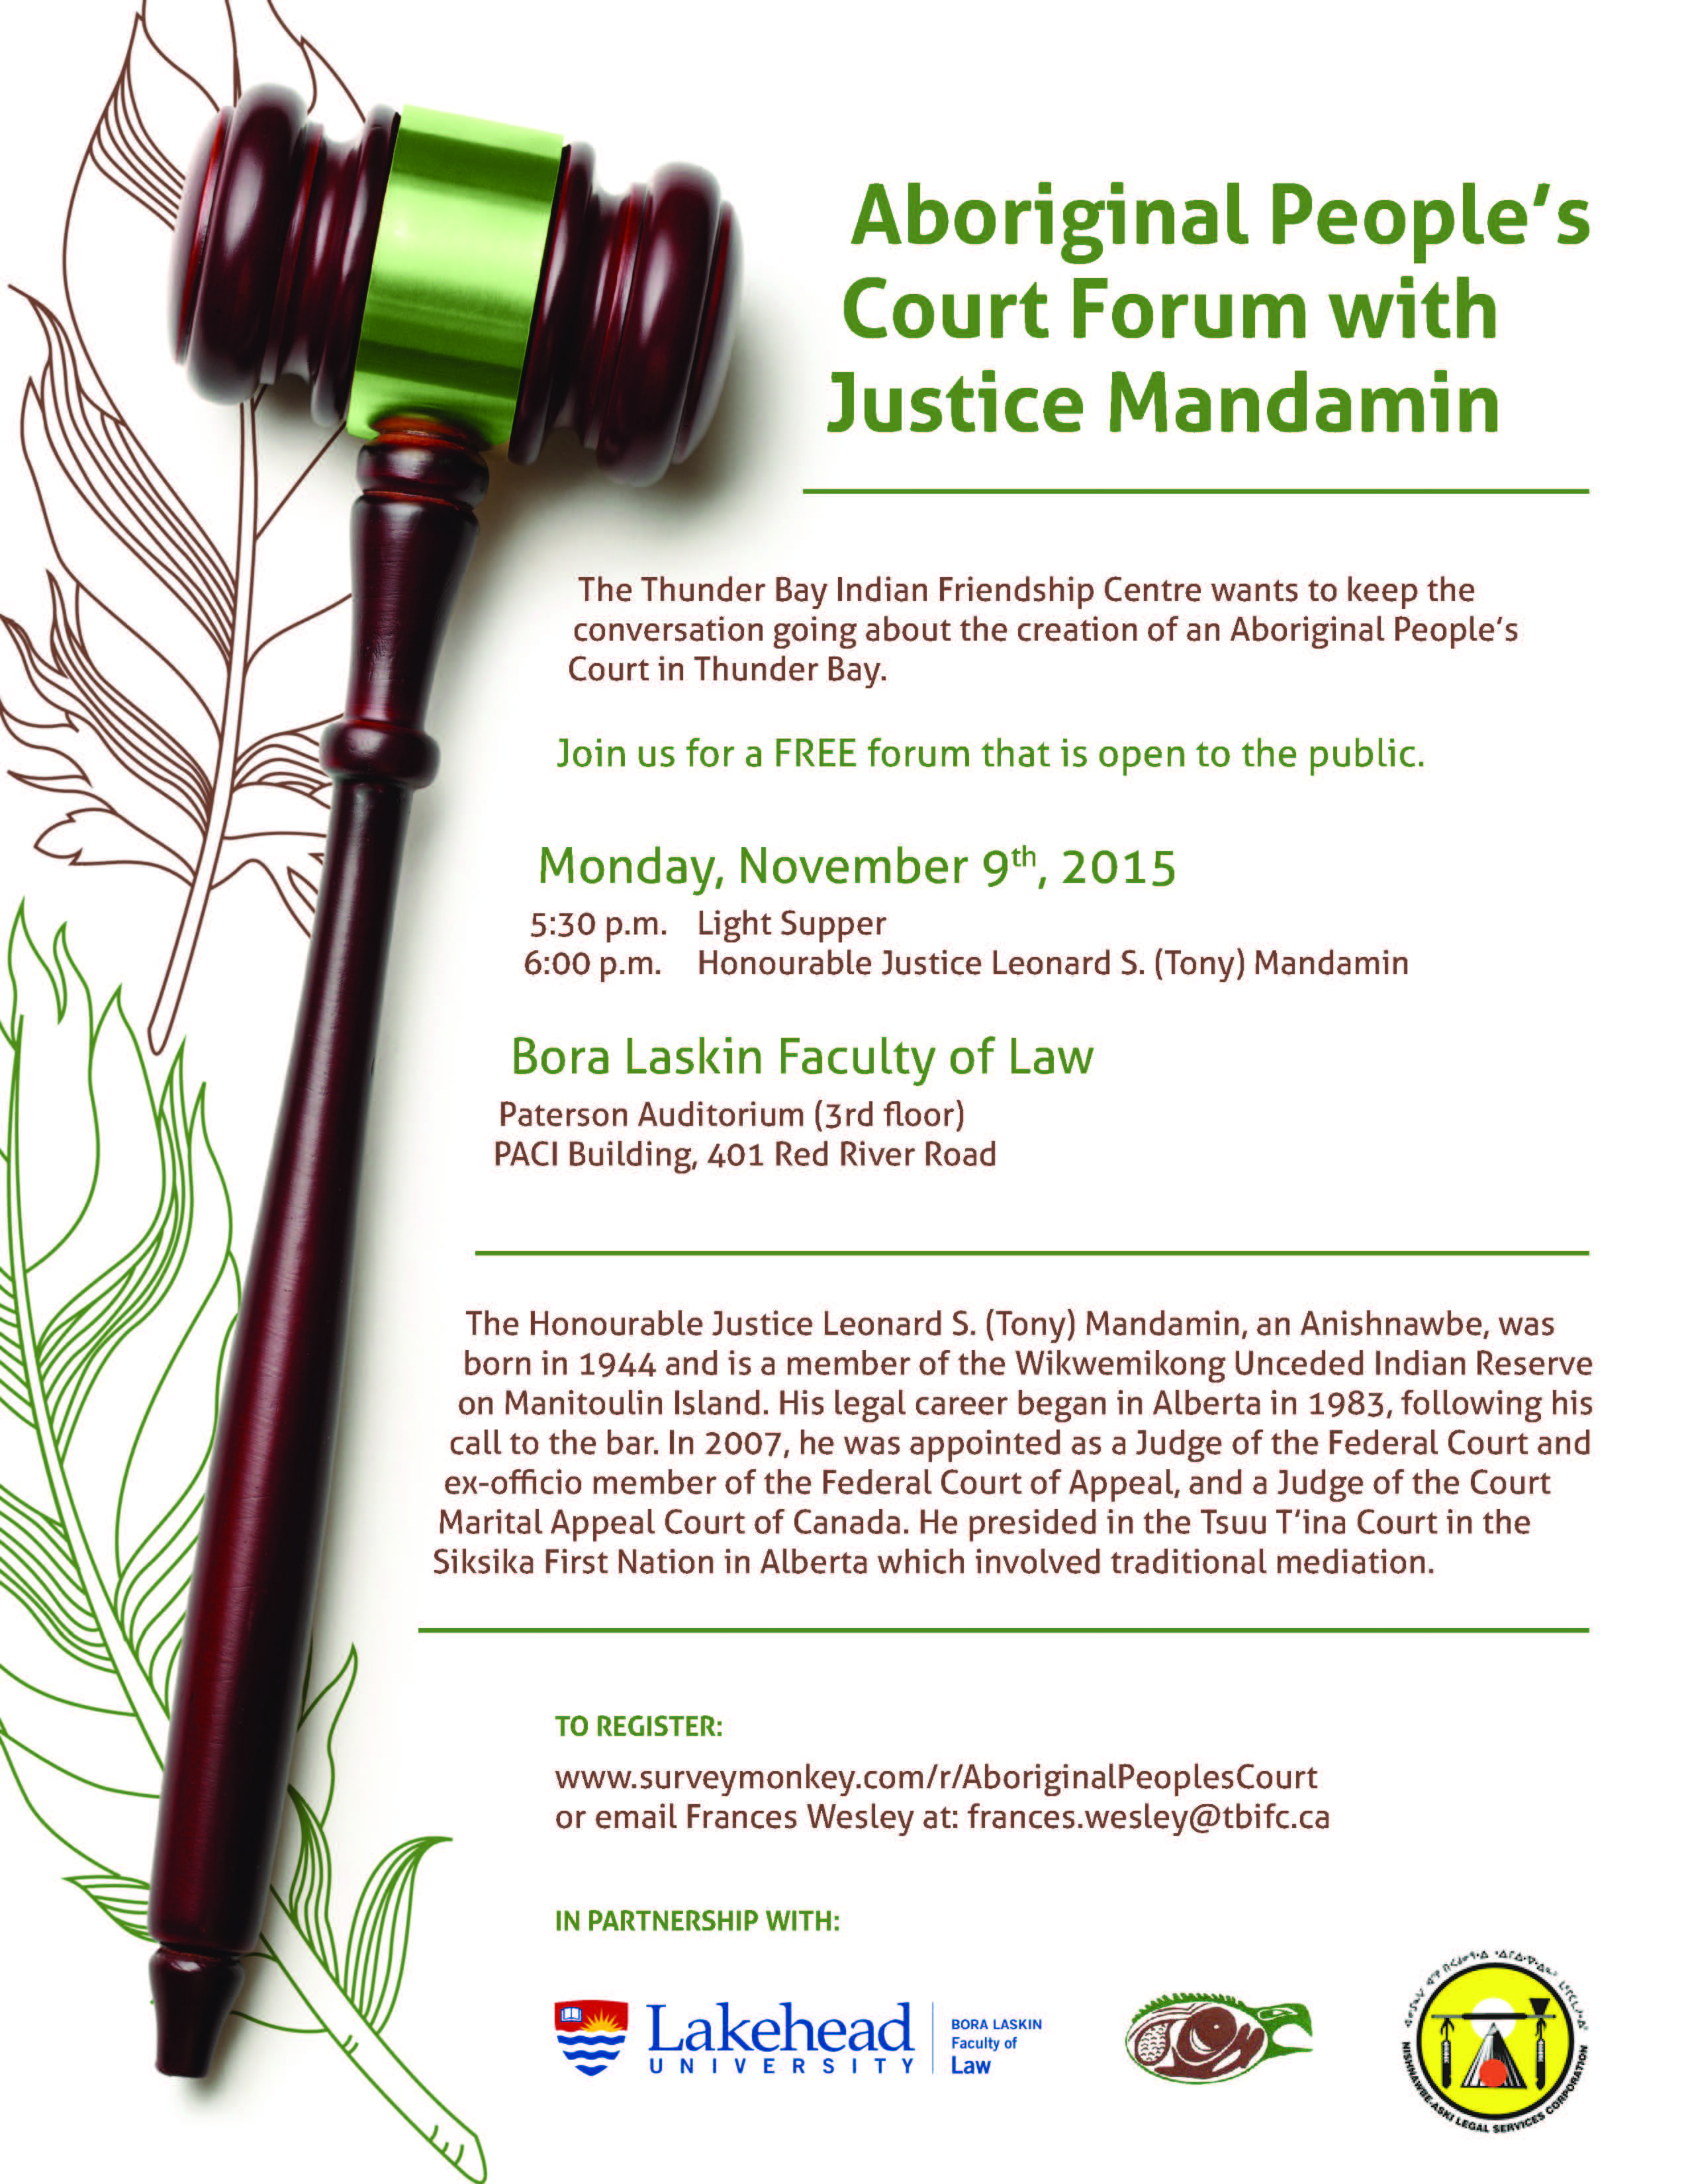 Aboriginal People's Court Forum